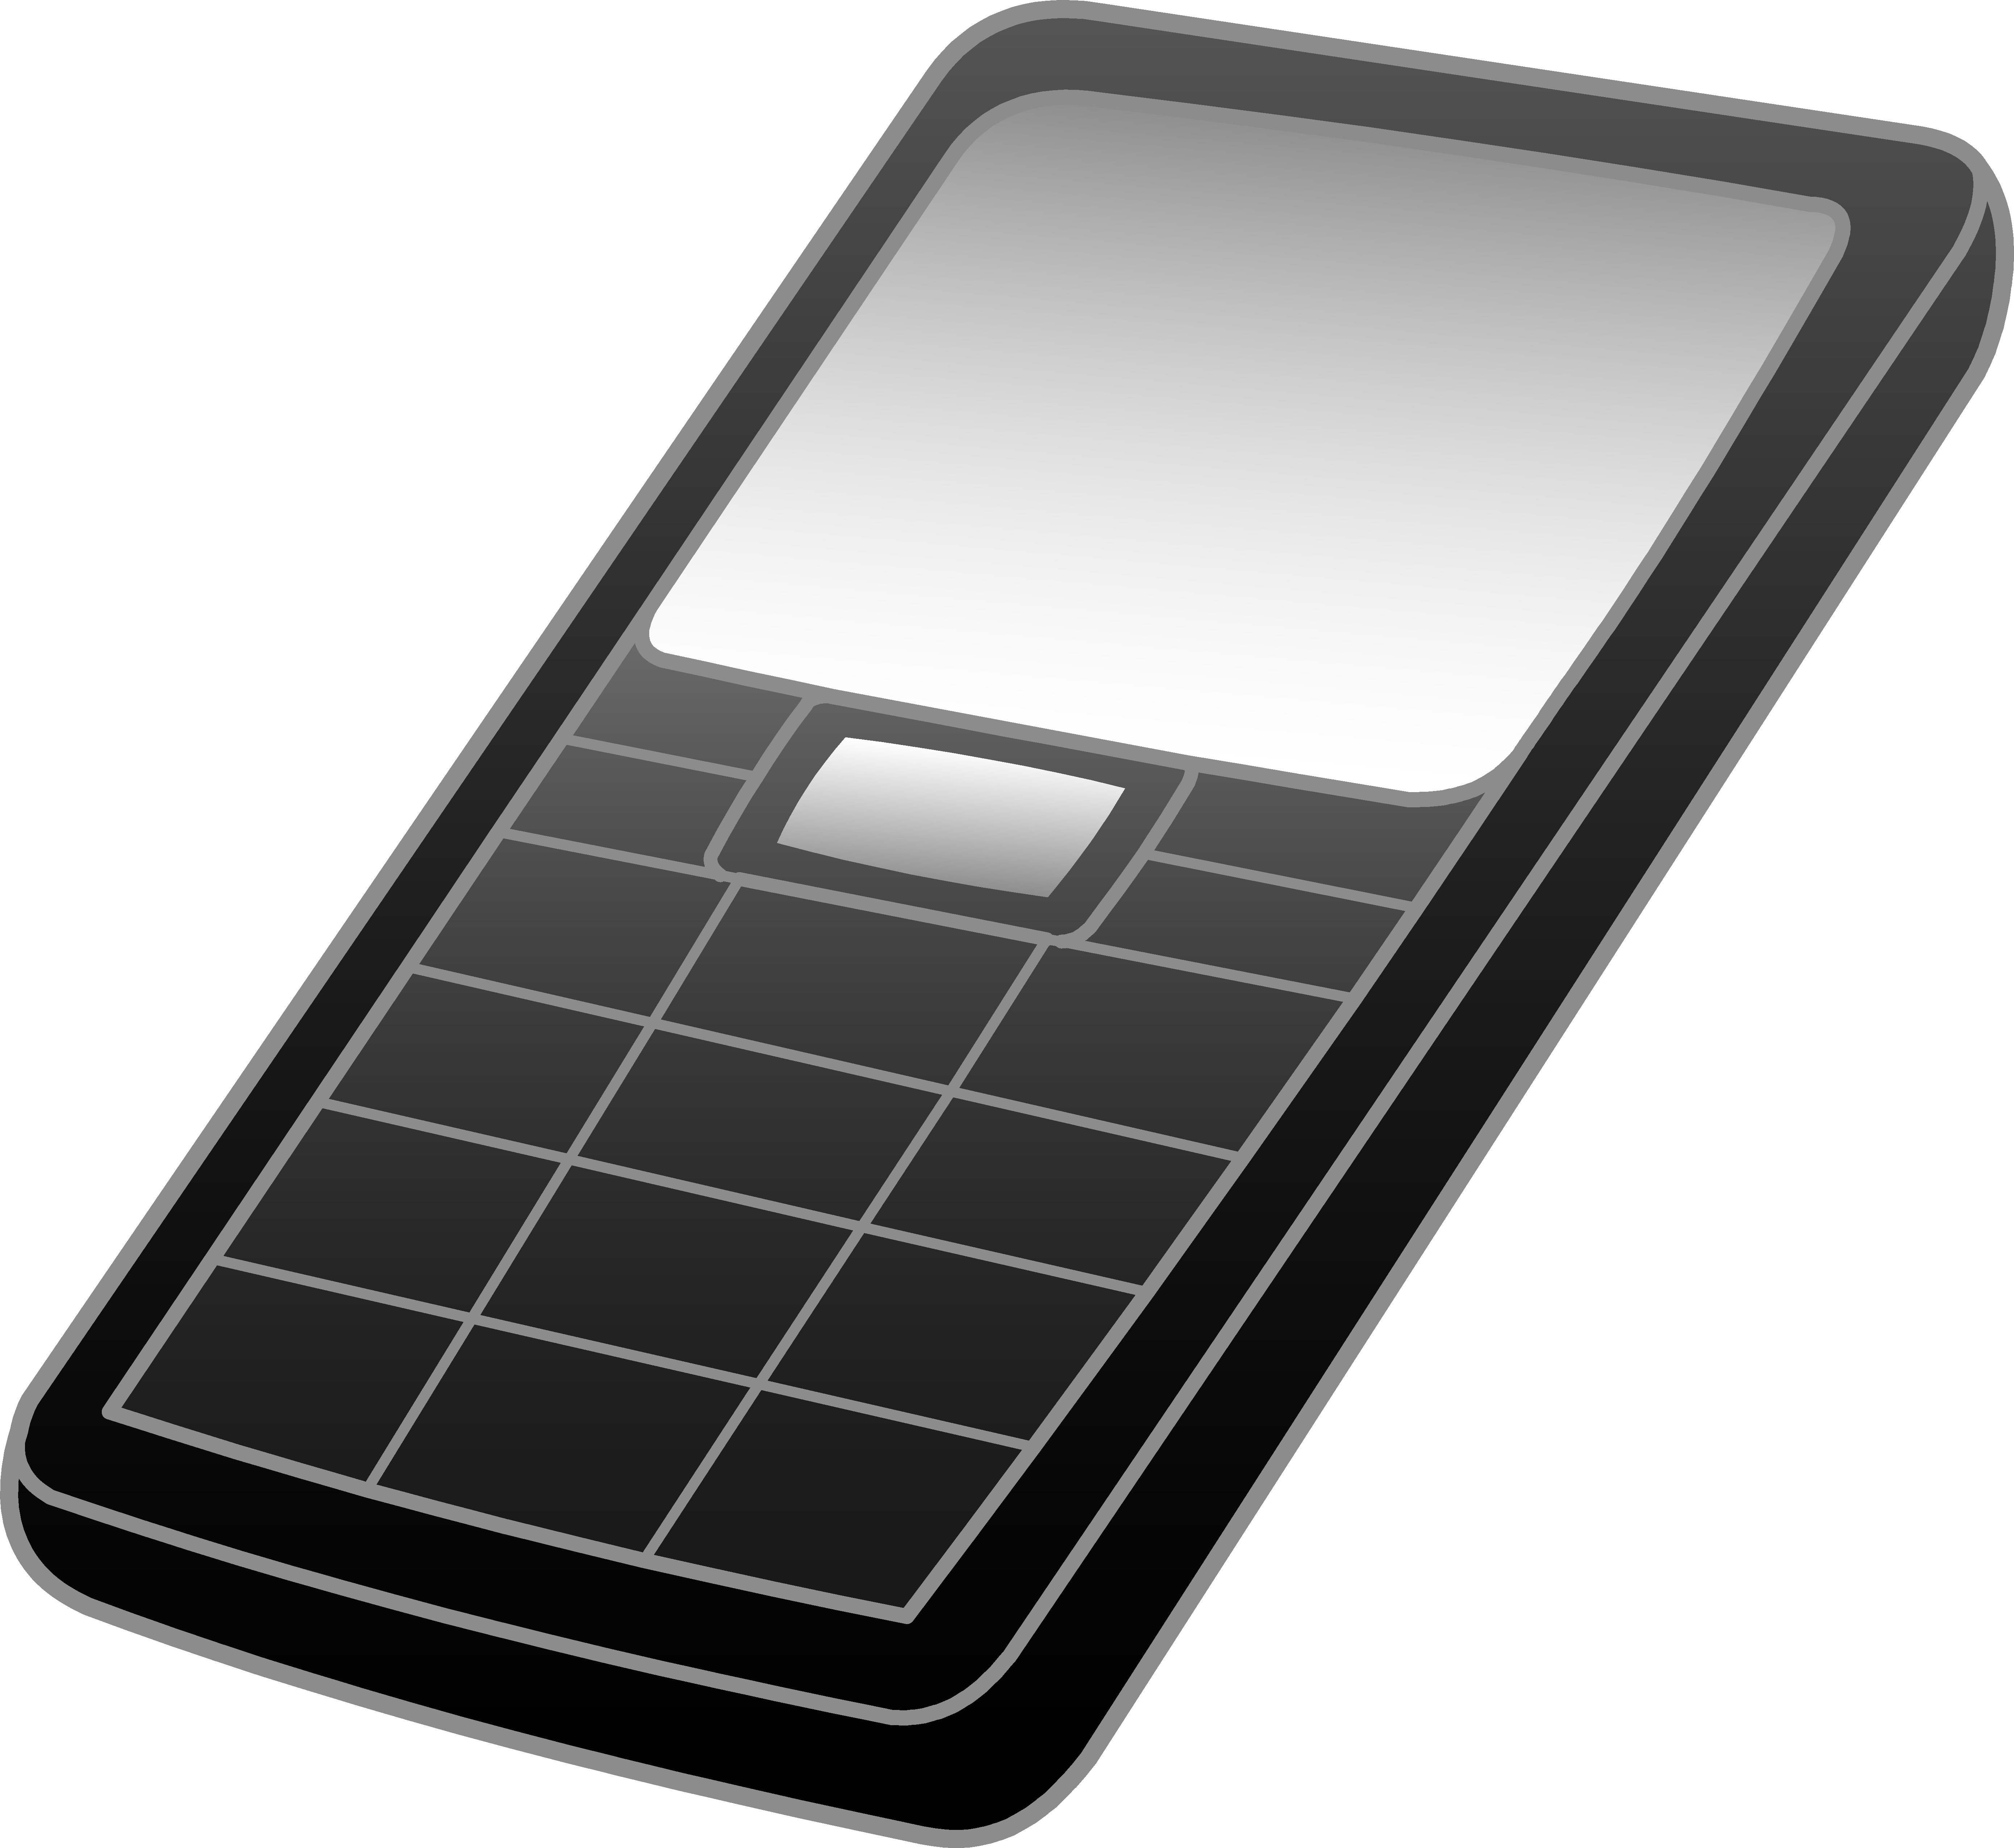 clip transparent stock Black and grey cell. Cells clipart cellular phone.